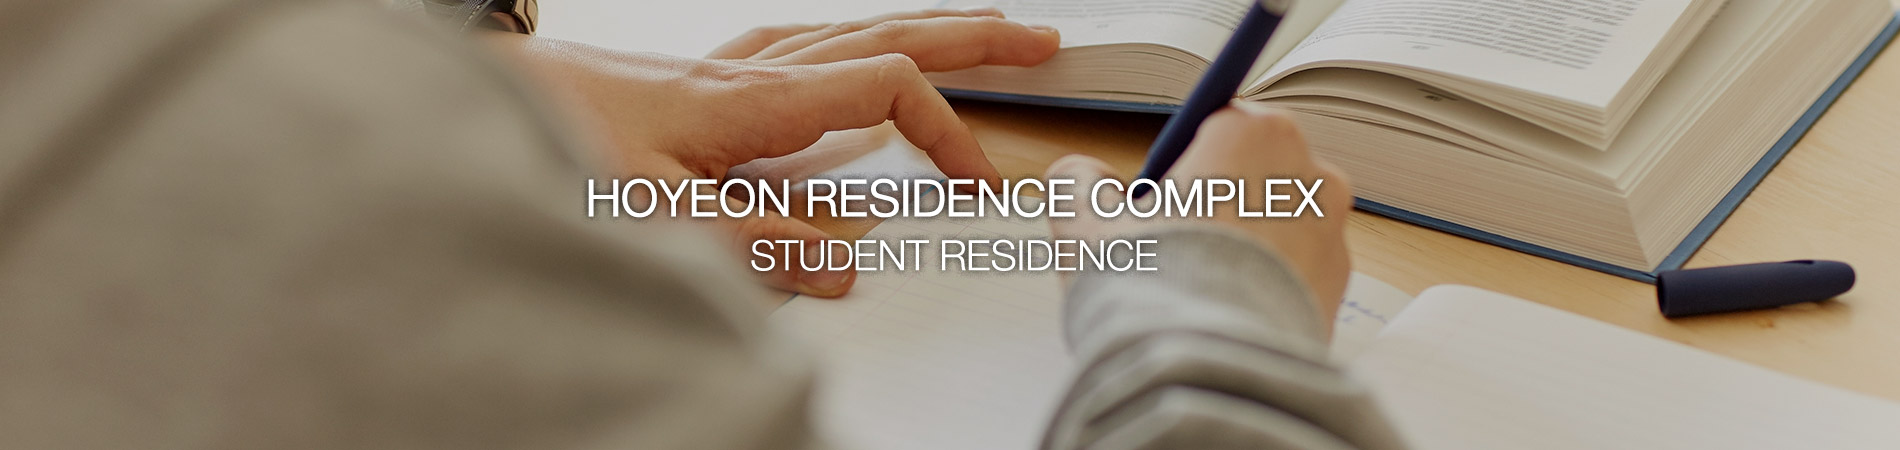 HOYEON RESIDENCE COMPLEX STUDENT RESIDENCE